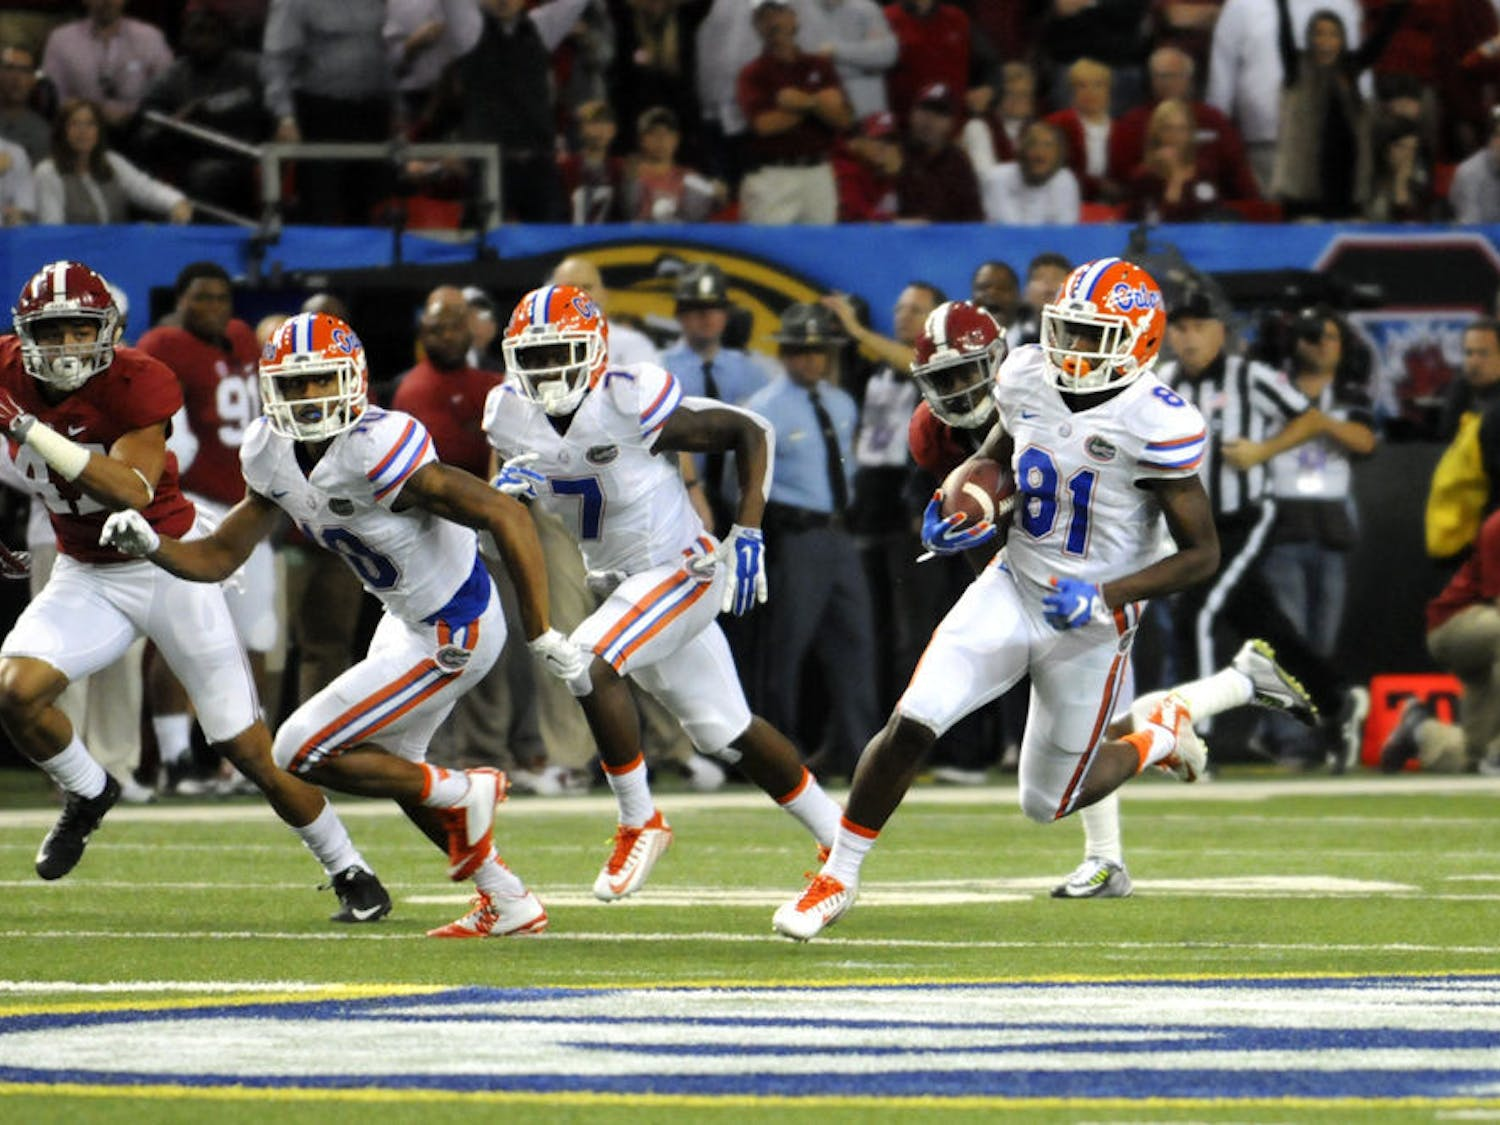 UF's Antonio Callaway (81) returns a punt 85 yards for a touchdown during Florida's 29-15loss to Alabamain the Southeastern Conference Championship Game on Dec. 5, 2015, in the Georgia Dome in Atlanta.